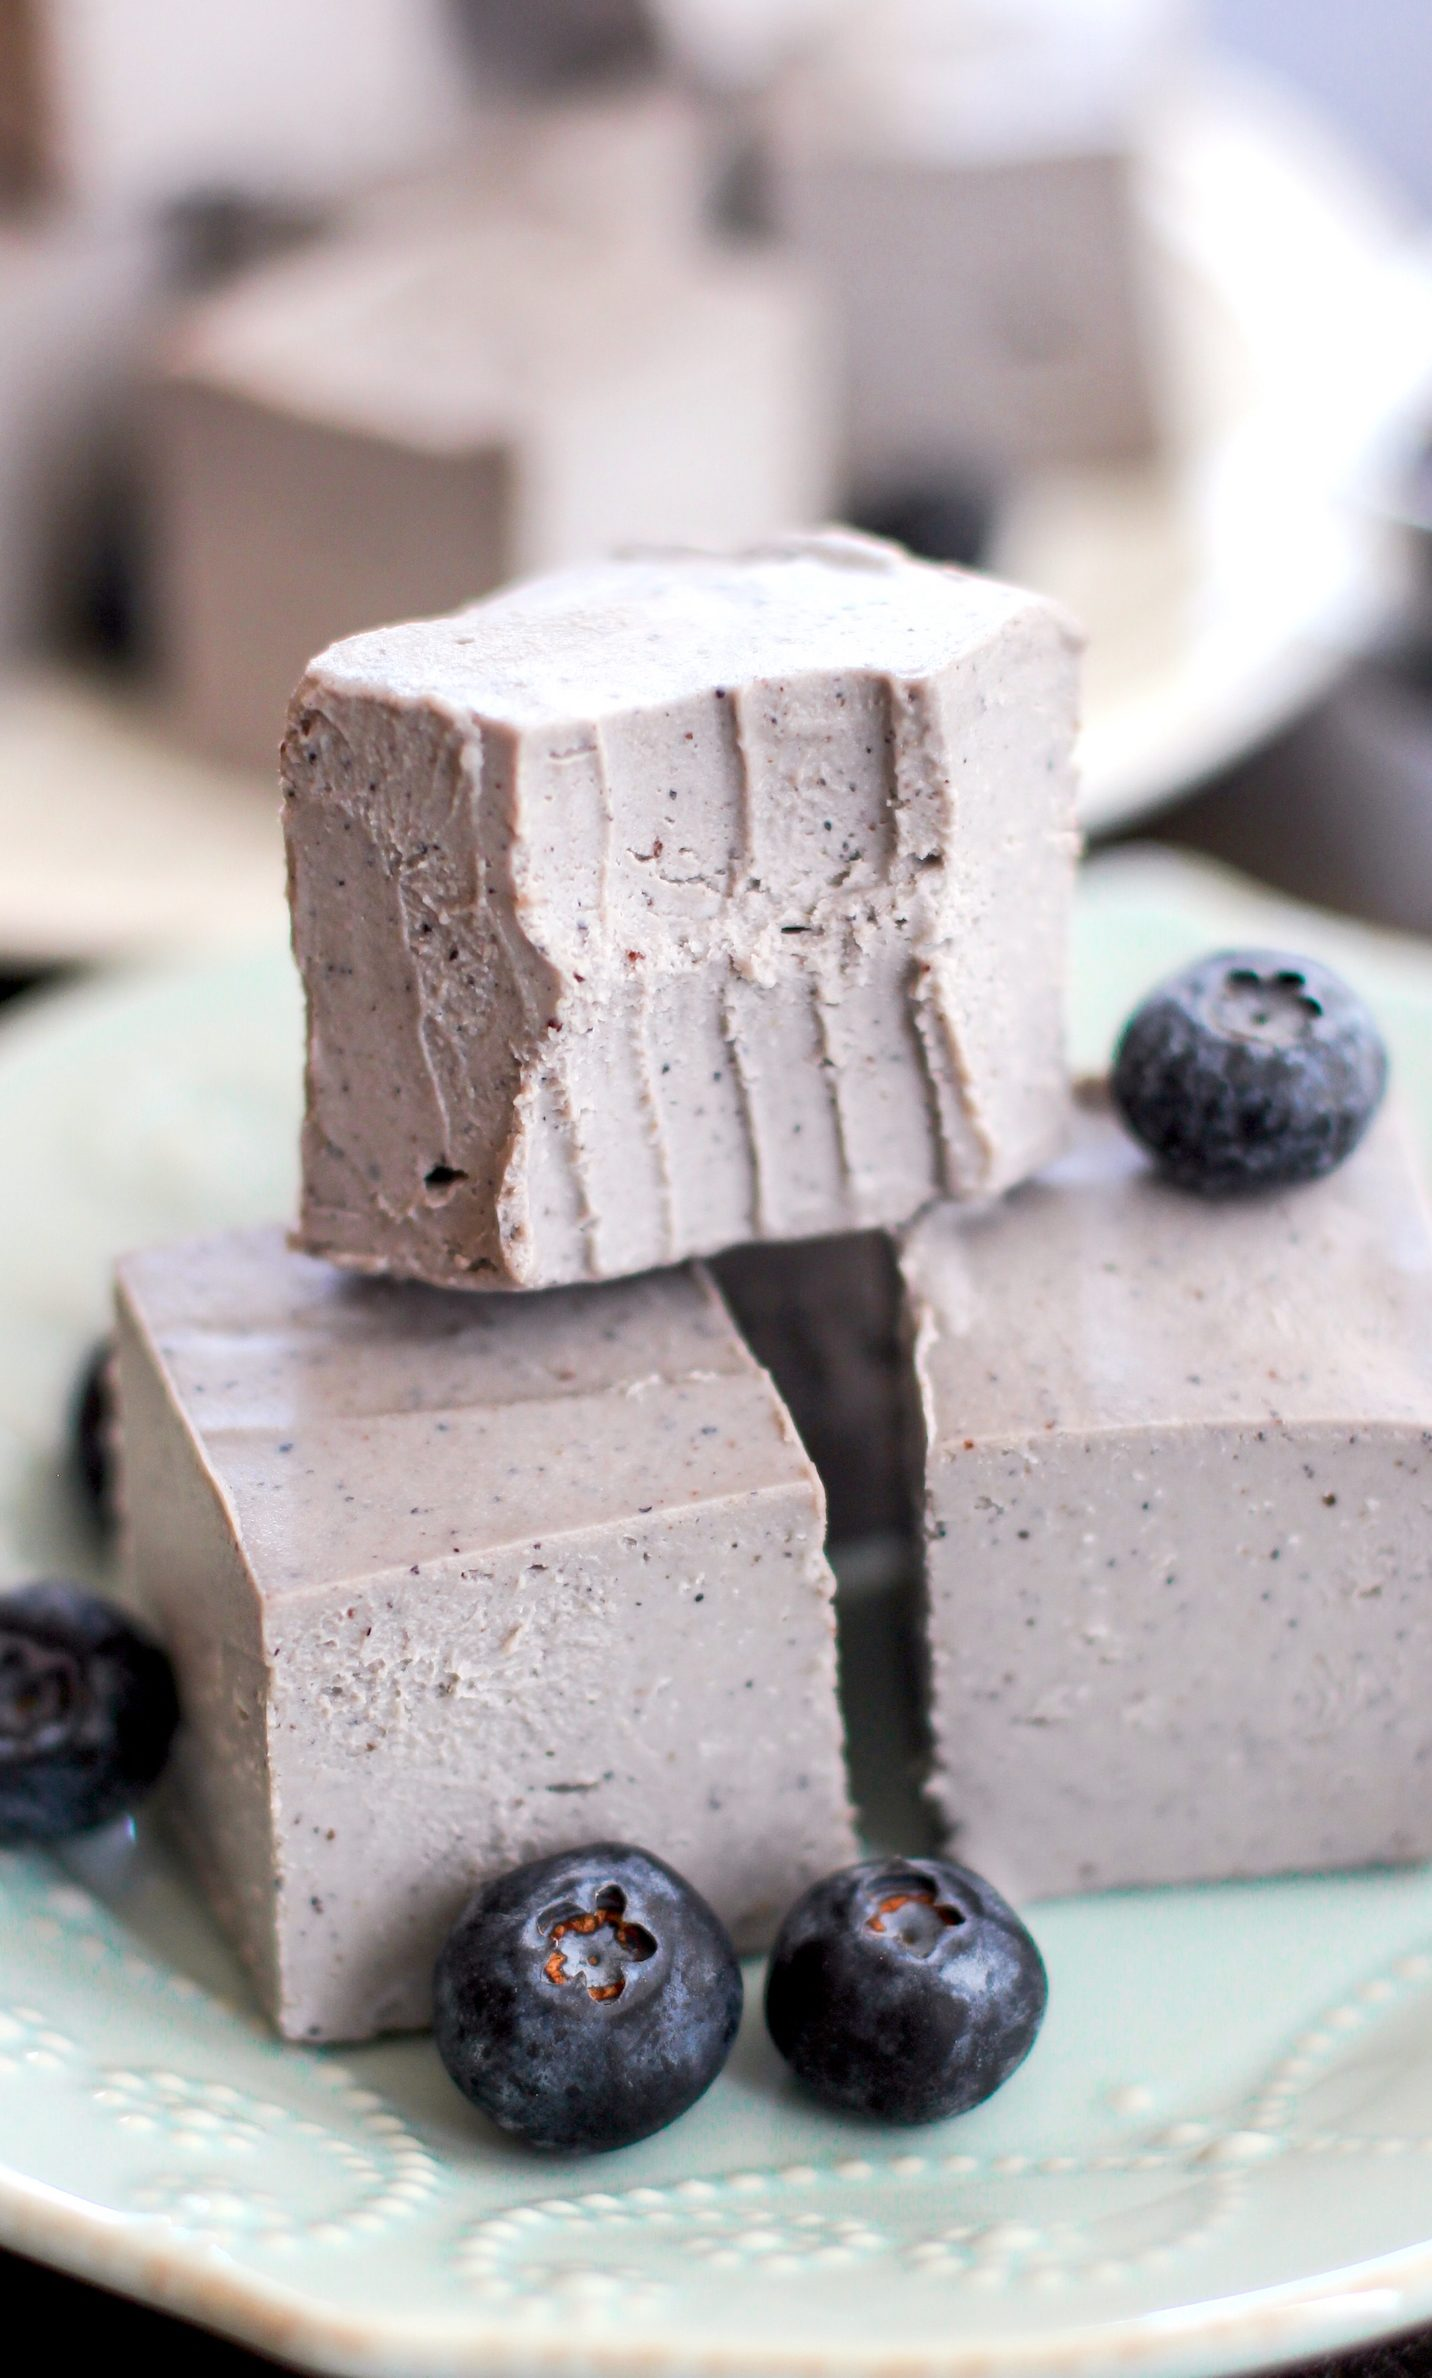 Healthy Raw Blueberry Coconut Fudge (refined sugar free, low carb, gluten free, vegan) - Healthy Dessert Recipes at Desserts with Benefits